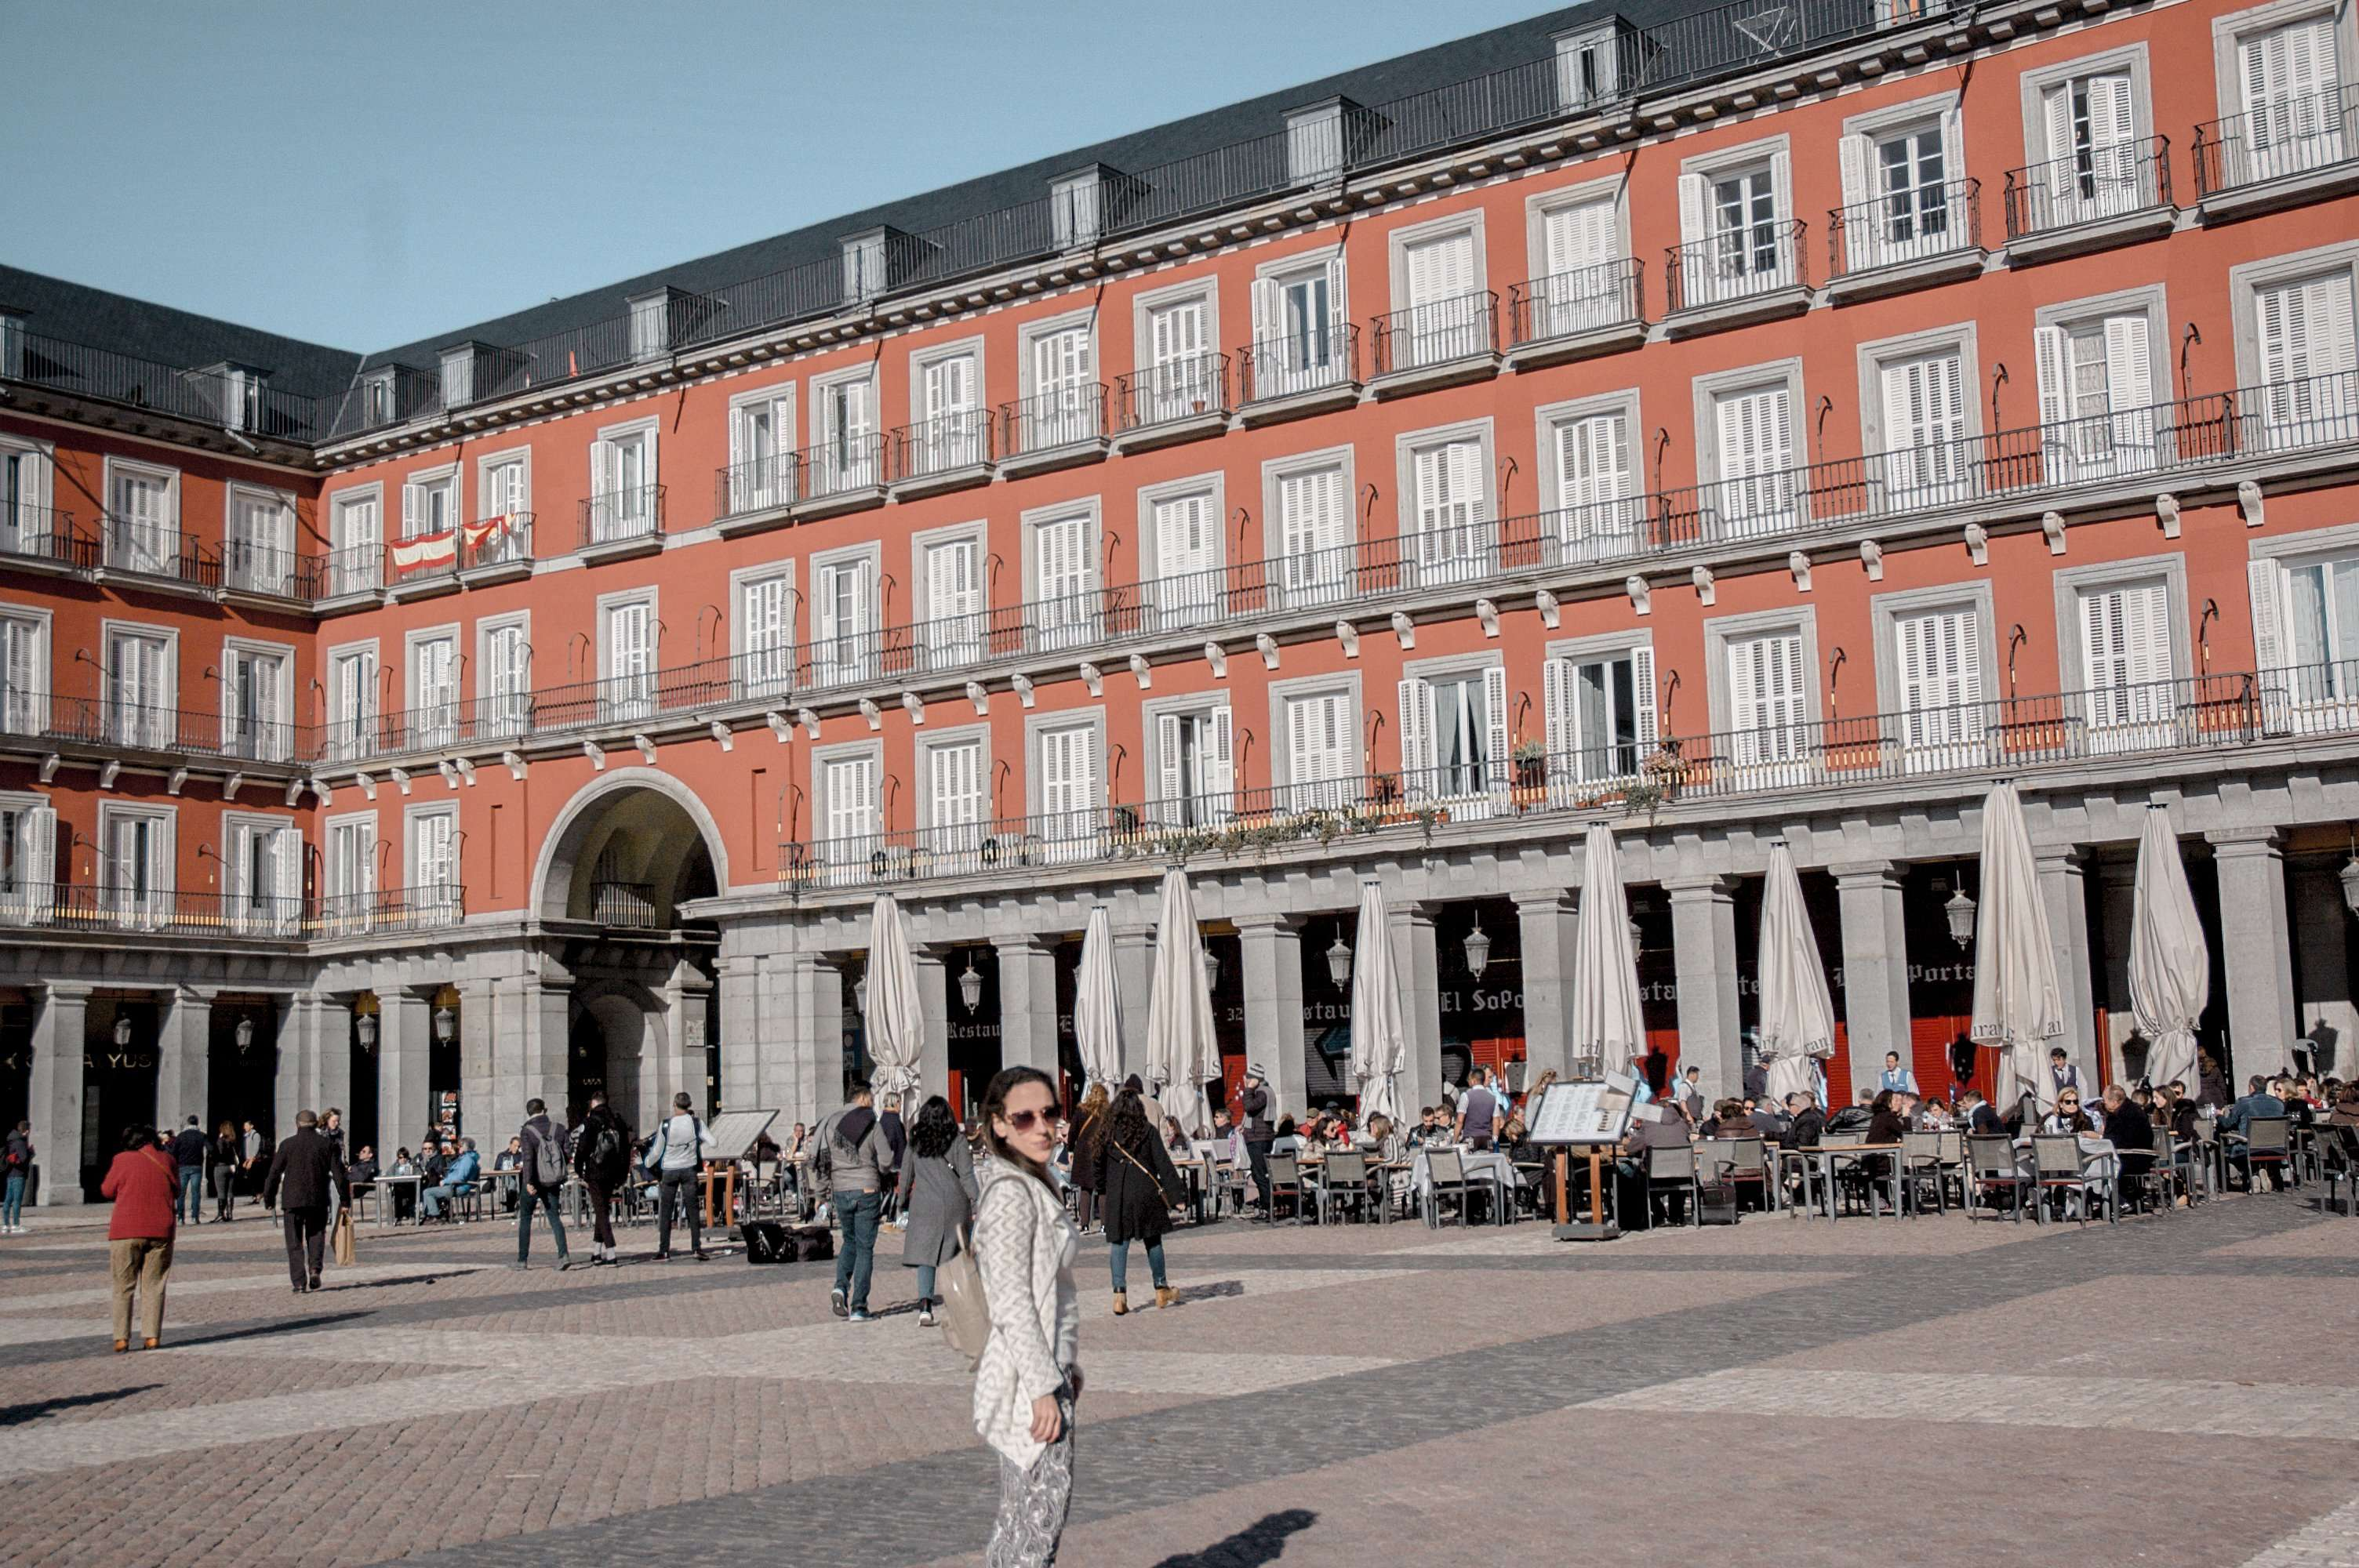 A poor attempt at a Plaza Mayor photo without the crowds